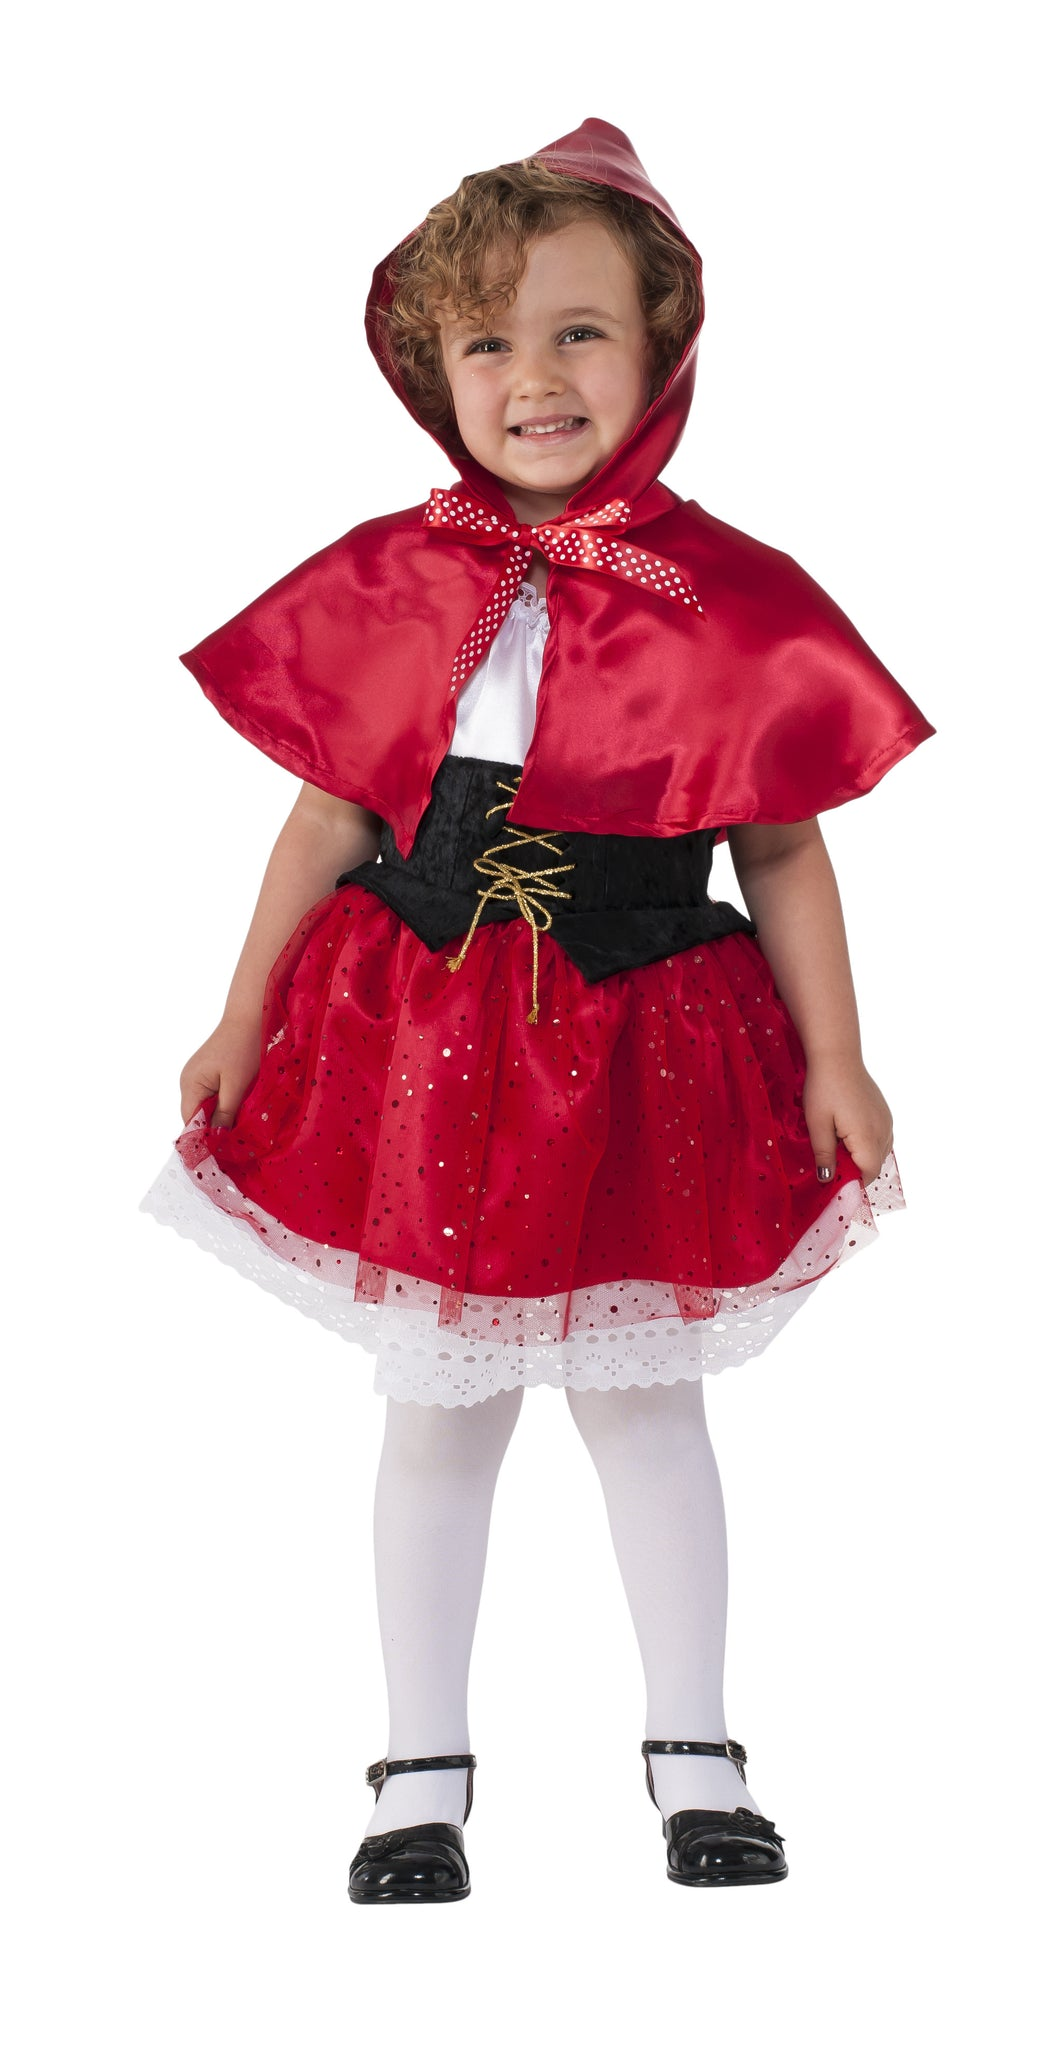 LIL'  RED RIDING HOOD, CHILD - SIZE TODDLER